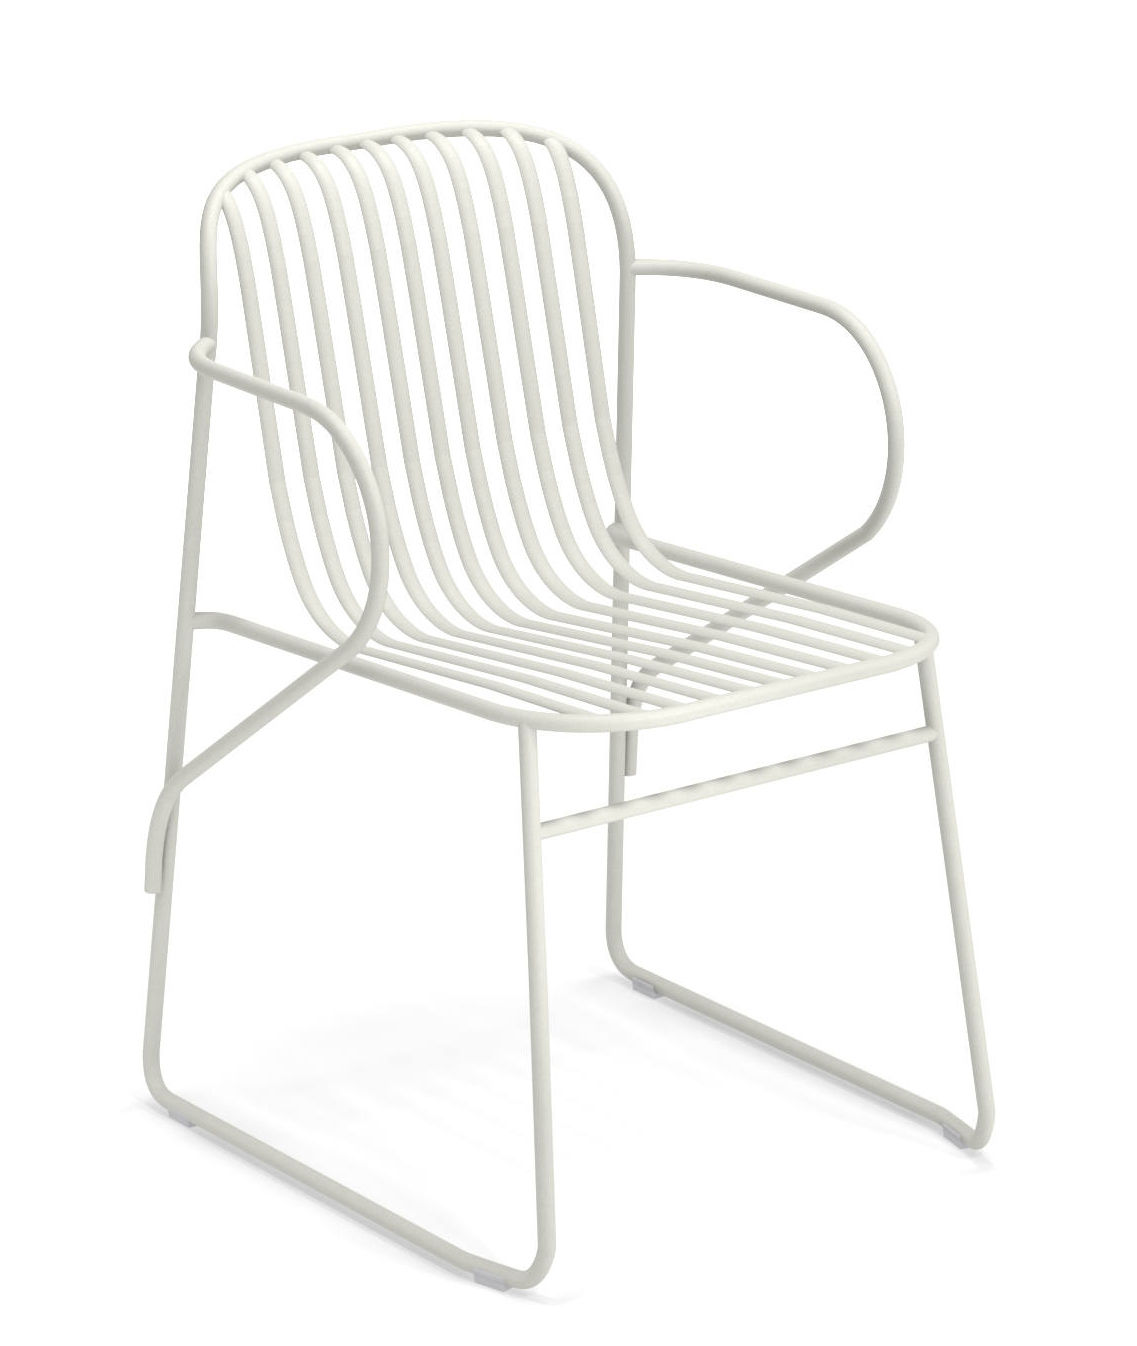 Furniture - Chairs - Riviera Stackable armchair - / Metal by Emu - White - Varnished steel